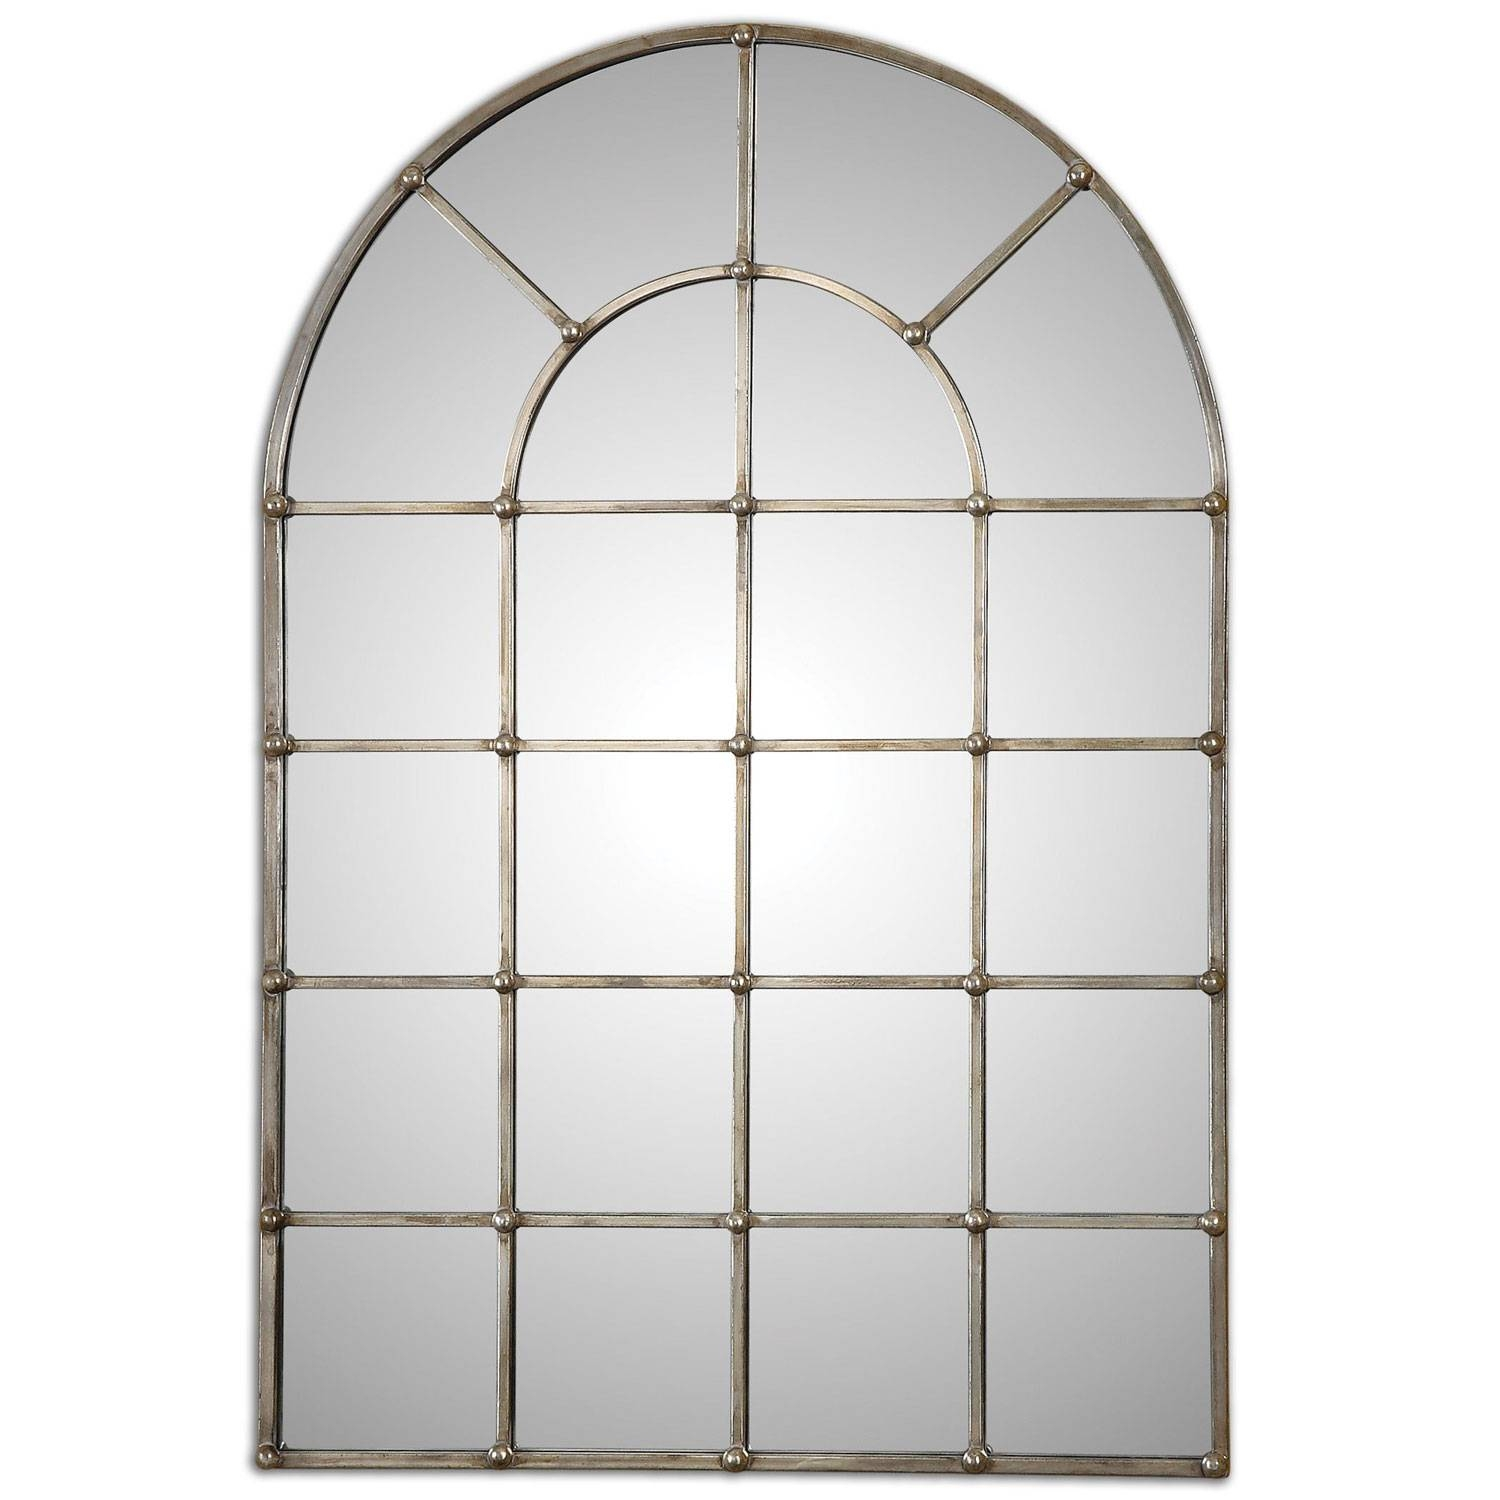 Stunning Design Arched Wall Mirror Absolutely Smart Arched Wall for Arched Wall Mirrors (Image 12 of 15)